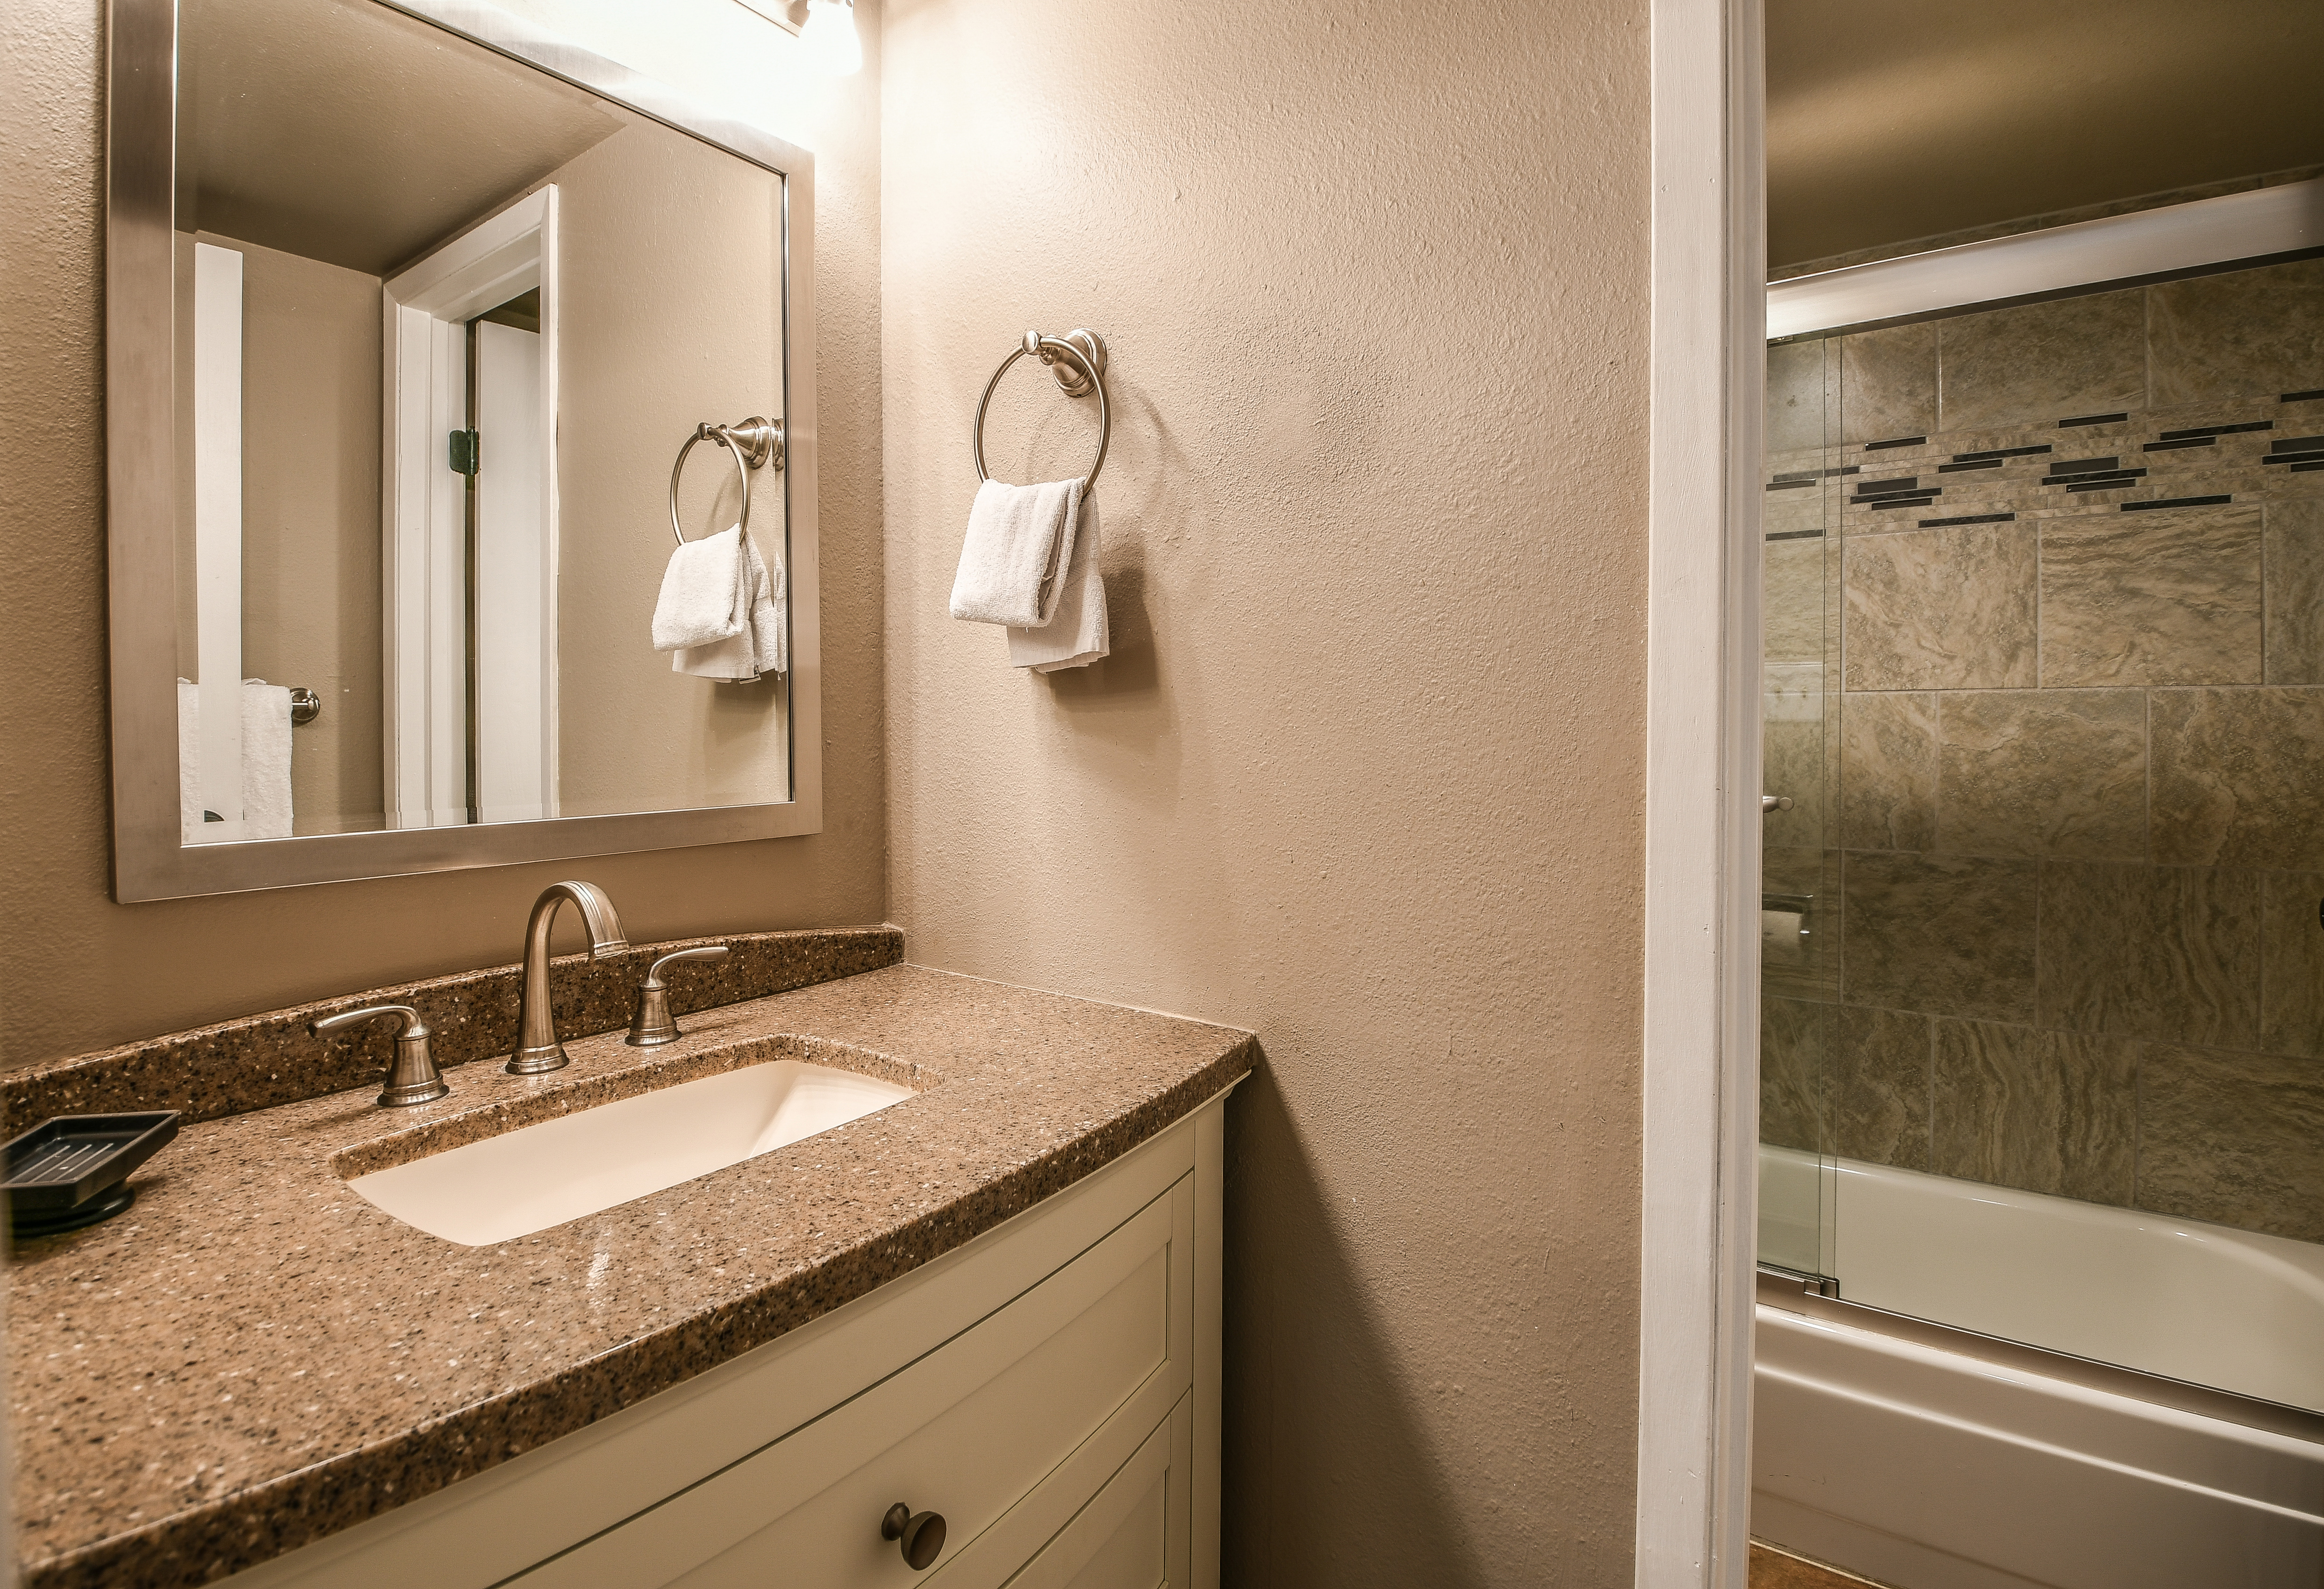 Bathroom with relaxing shower and sink with storage